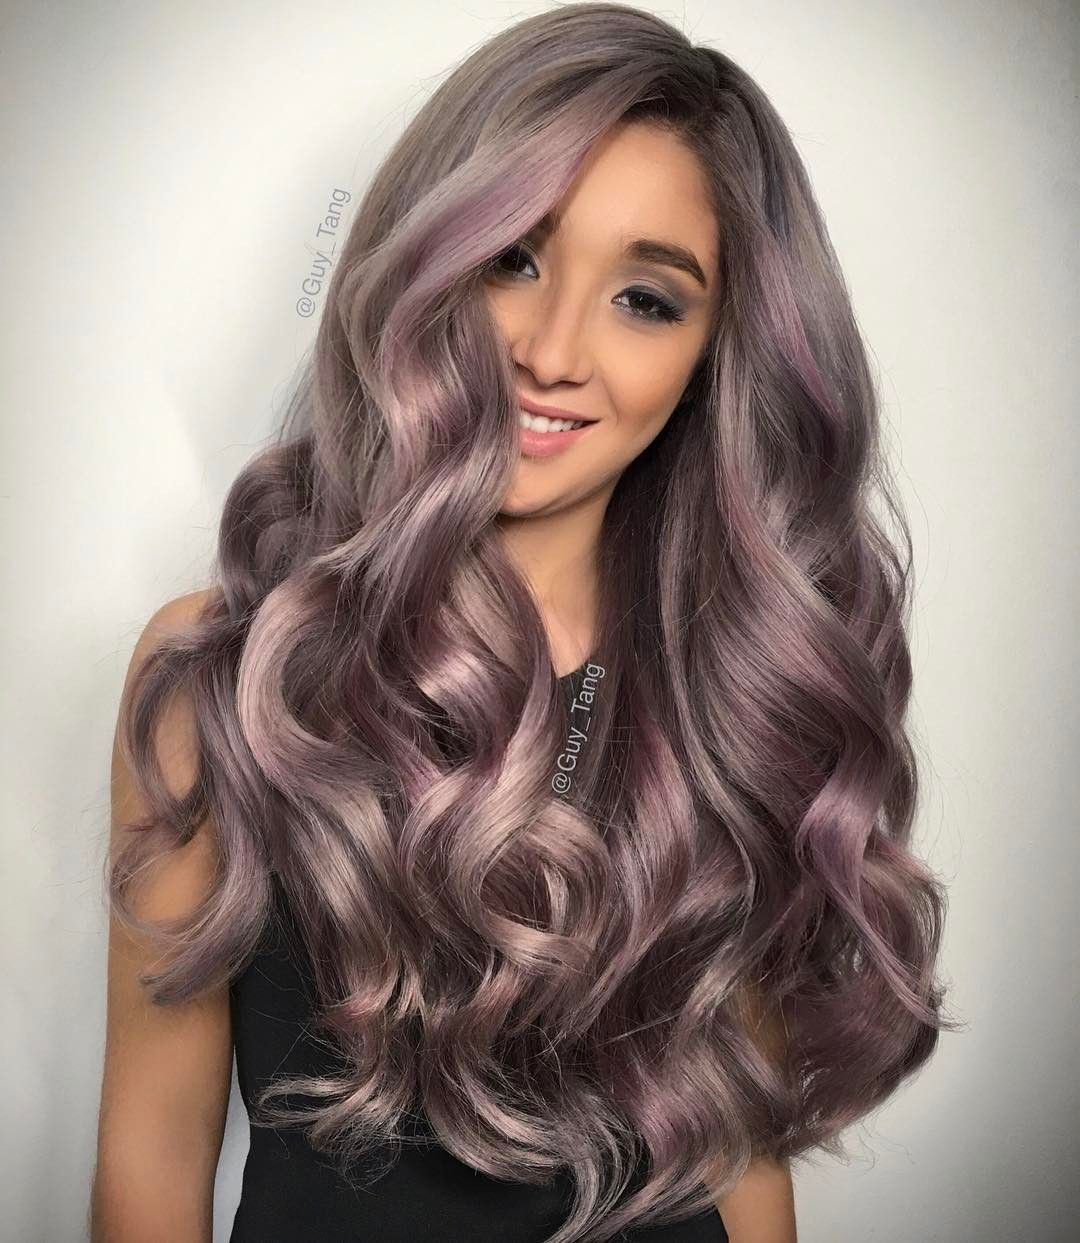 Guy Tang Hairbesties Can You Believe This Girl Is 13 Years Old She Is One Of My Models From Chile During My Tour With Olaplex She Has So Much Har Og Skonhed